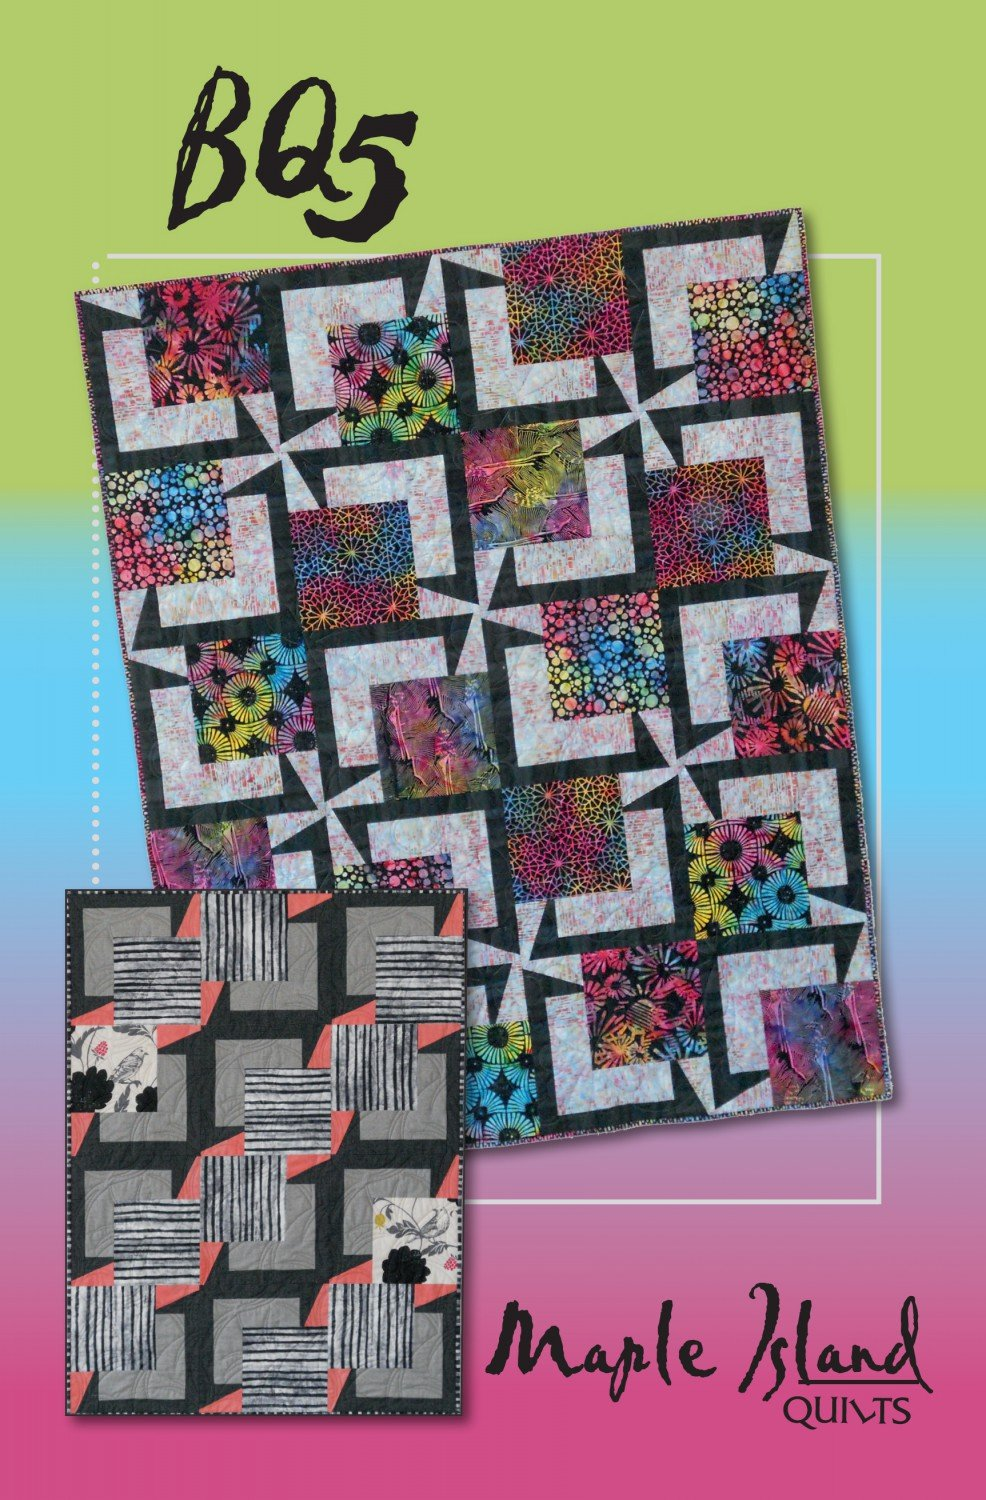 BQ5 - Maple Island Quilts - MIQ-825